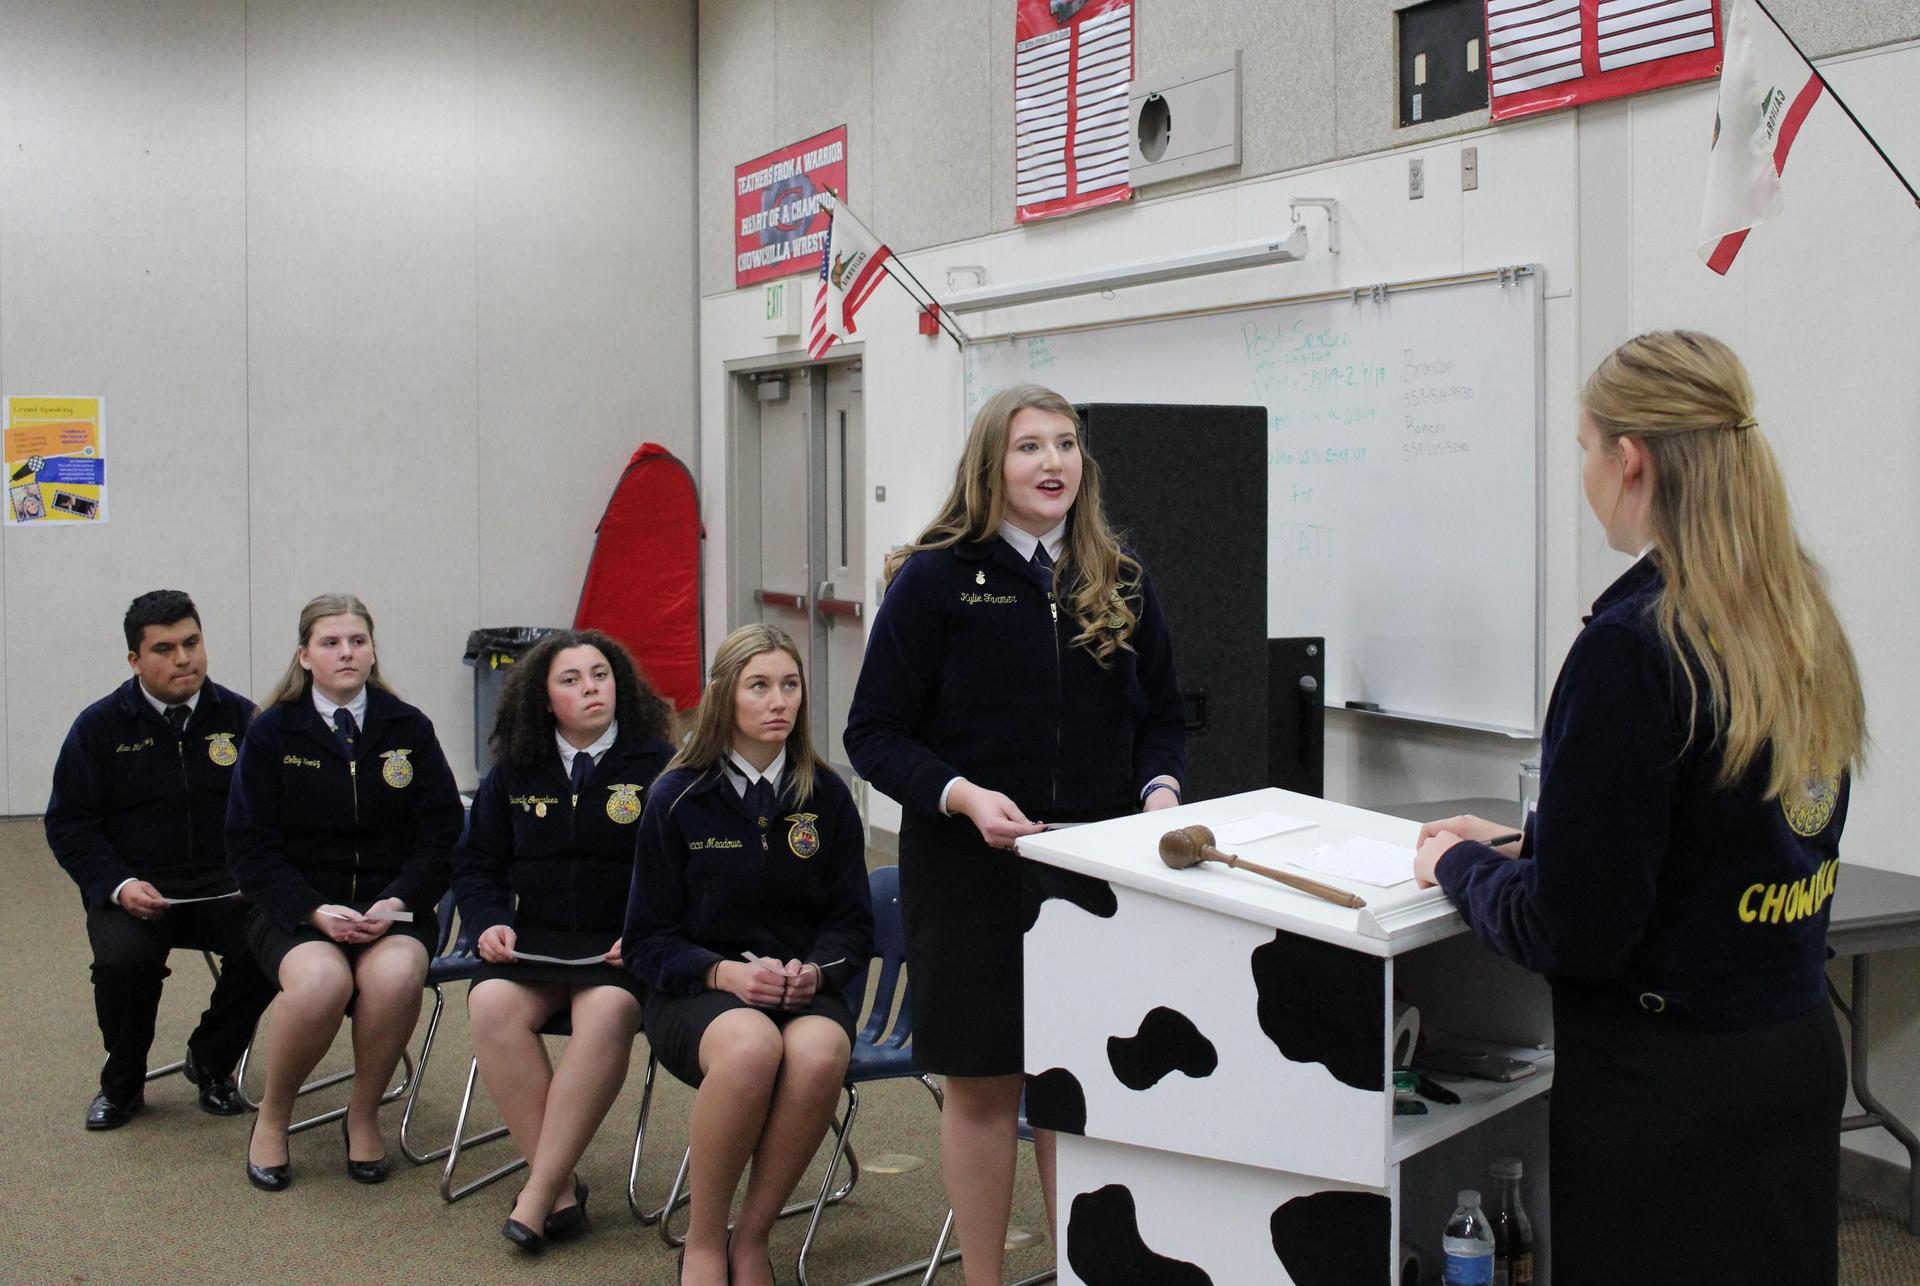 Alan Martinez, Colby Deniz, Beverly Goncalves, Joye Hughes, Kylie Farmer, and Zoe Bitter during first Parliamentary Procedure demonstration